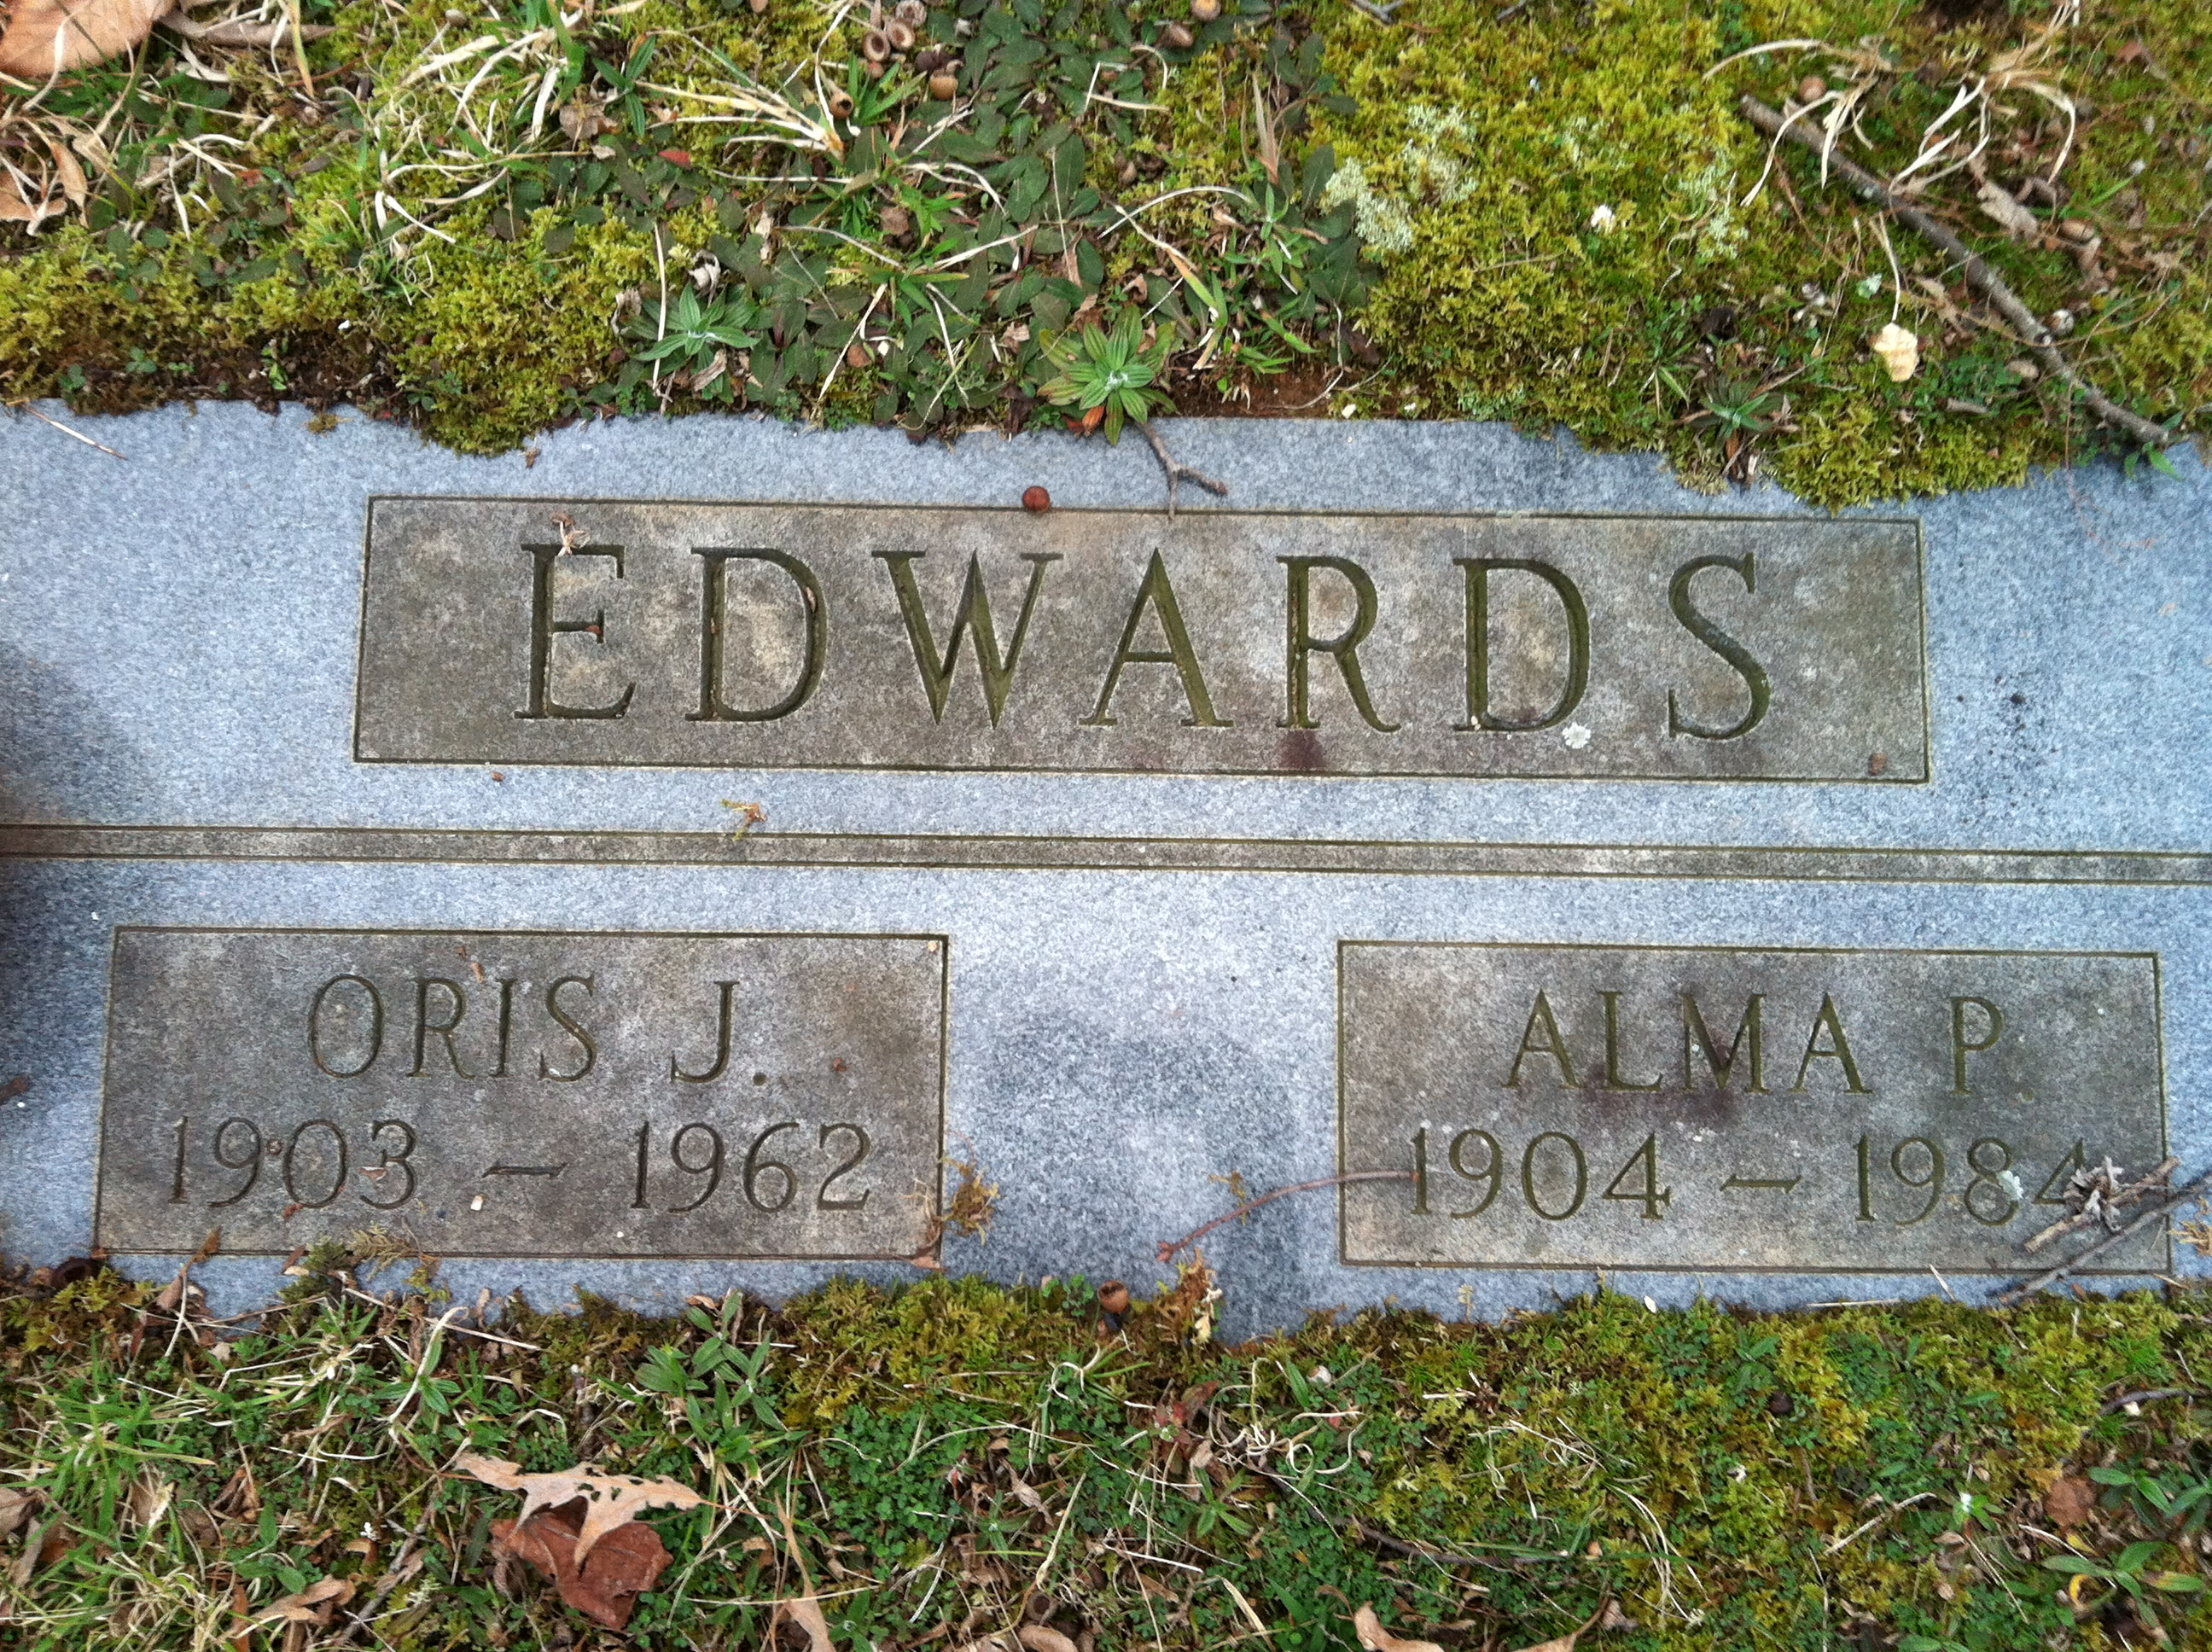 Oris Edwards